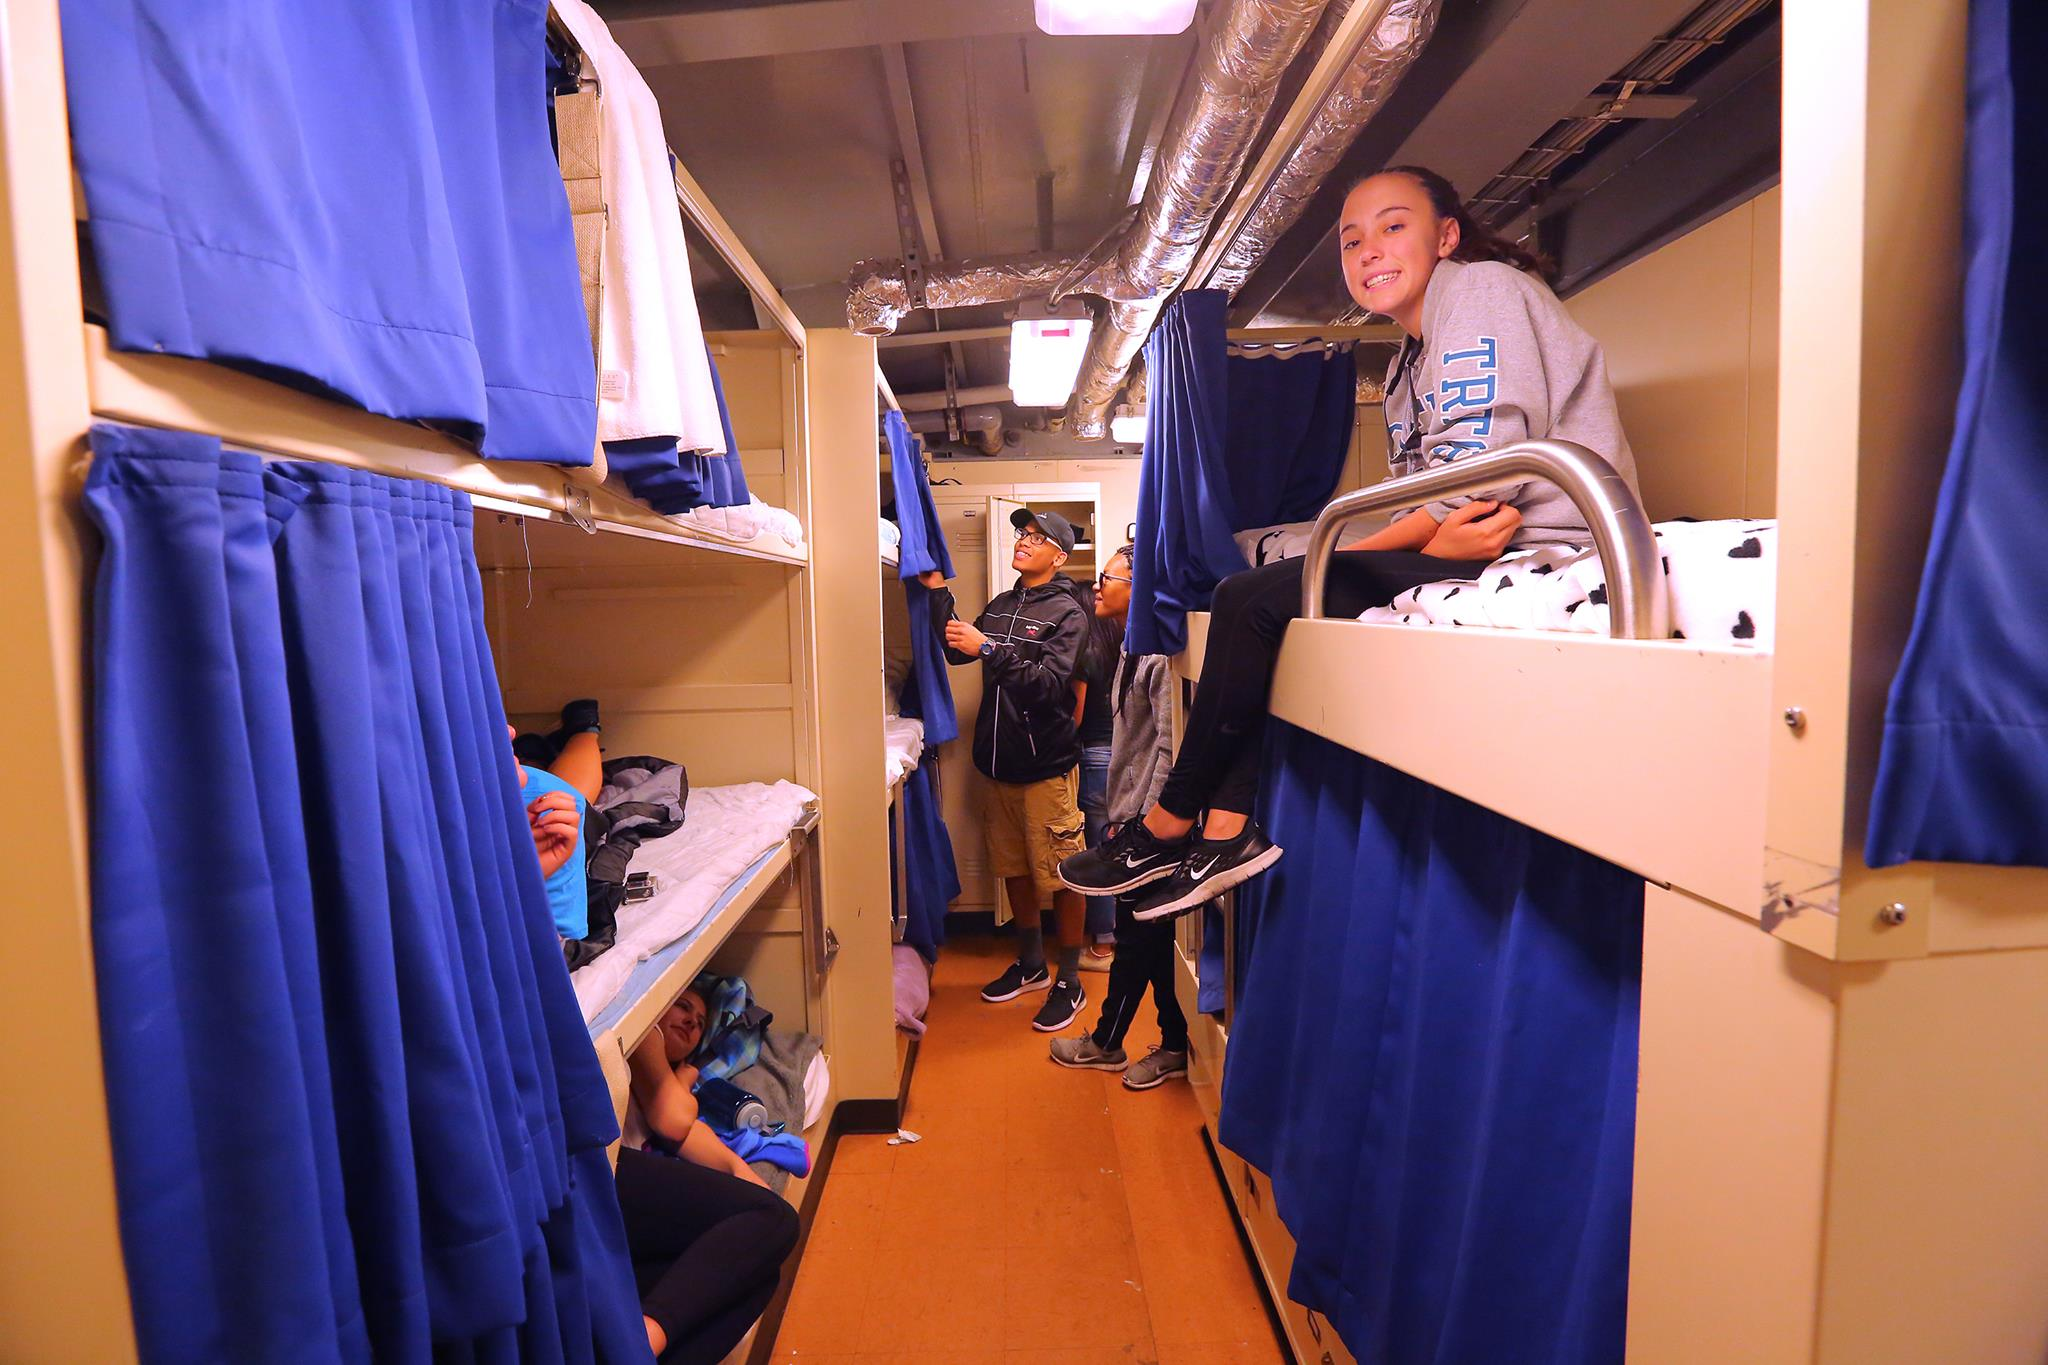 First thing's first- move in! Here you see our 16-person berthing space. Every person on board has a berth as well as a locker. There are also private two-person cabin's available which feature a private bathroom, desk, and more personal storage space.